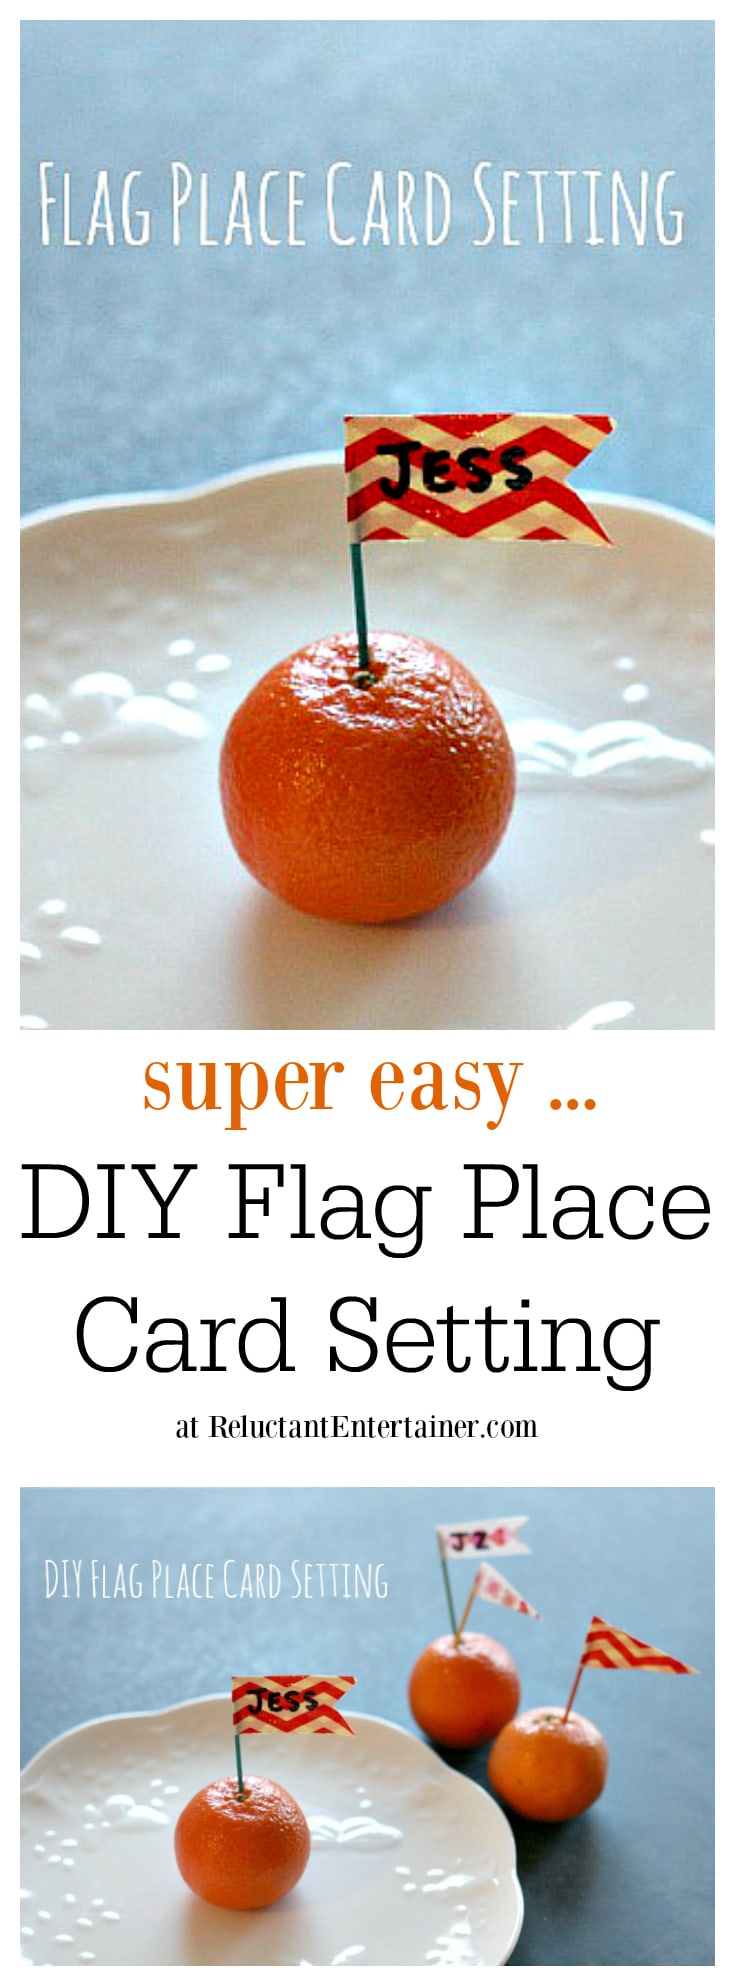 DIY Flag Place Card Setting at ReluctantEntertainer.com